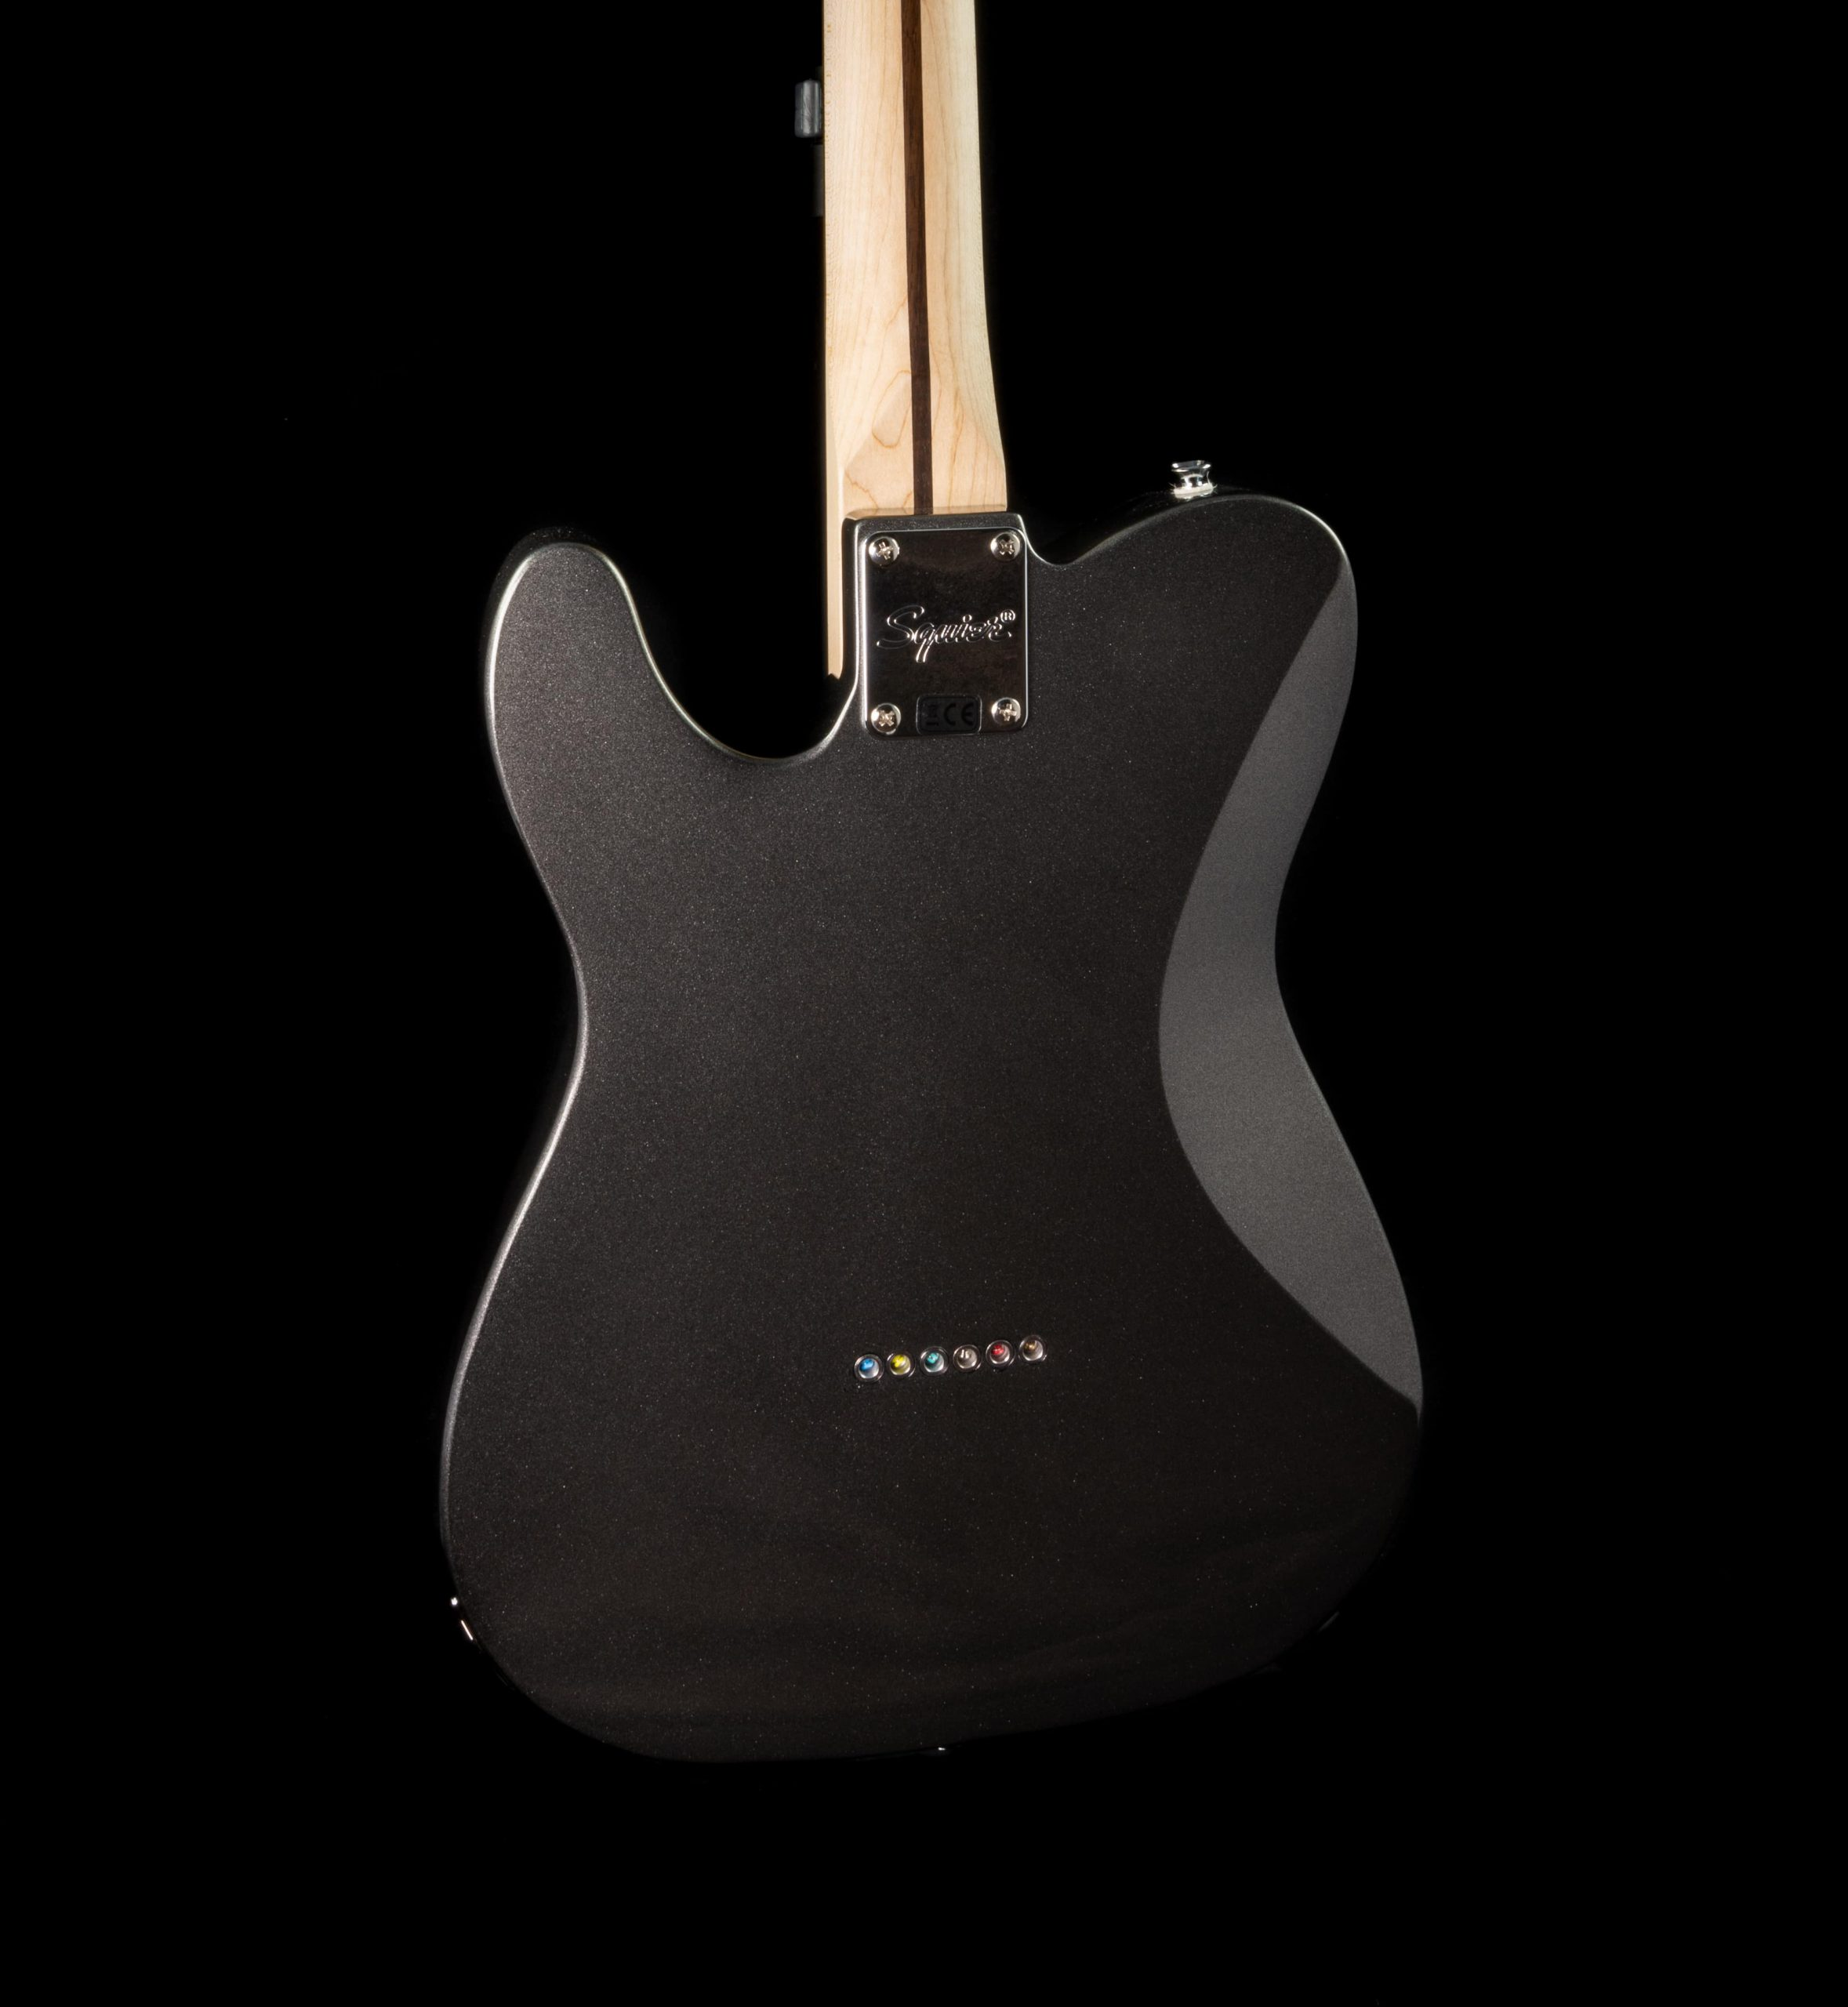 Squier Affinity Series Telecaster Deluxe in Charcoal Frost Metallic